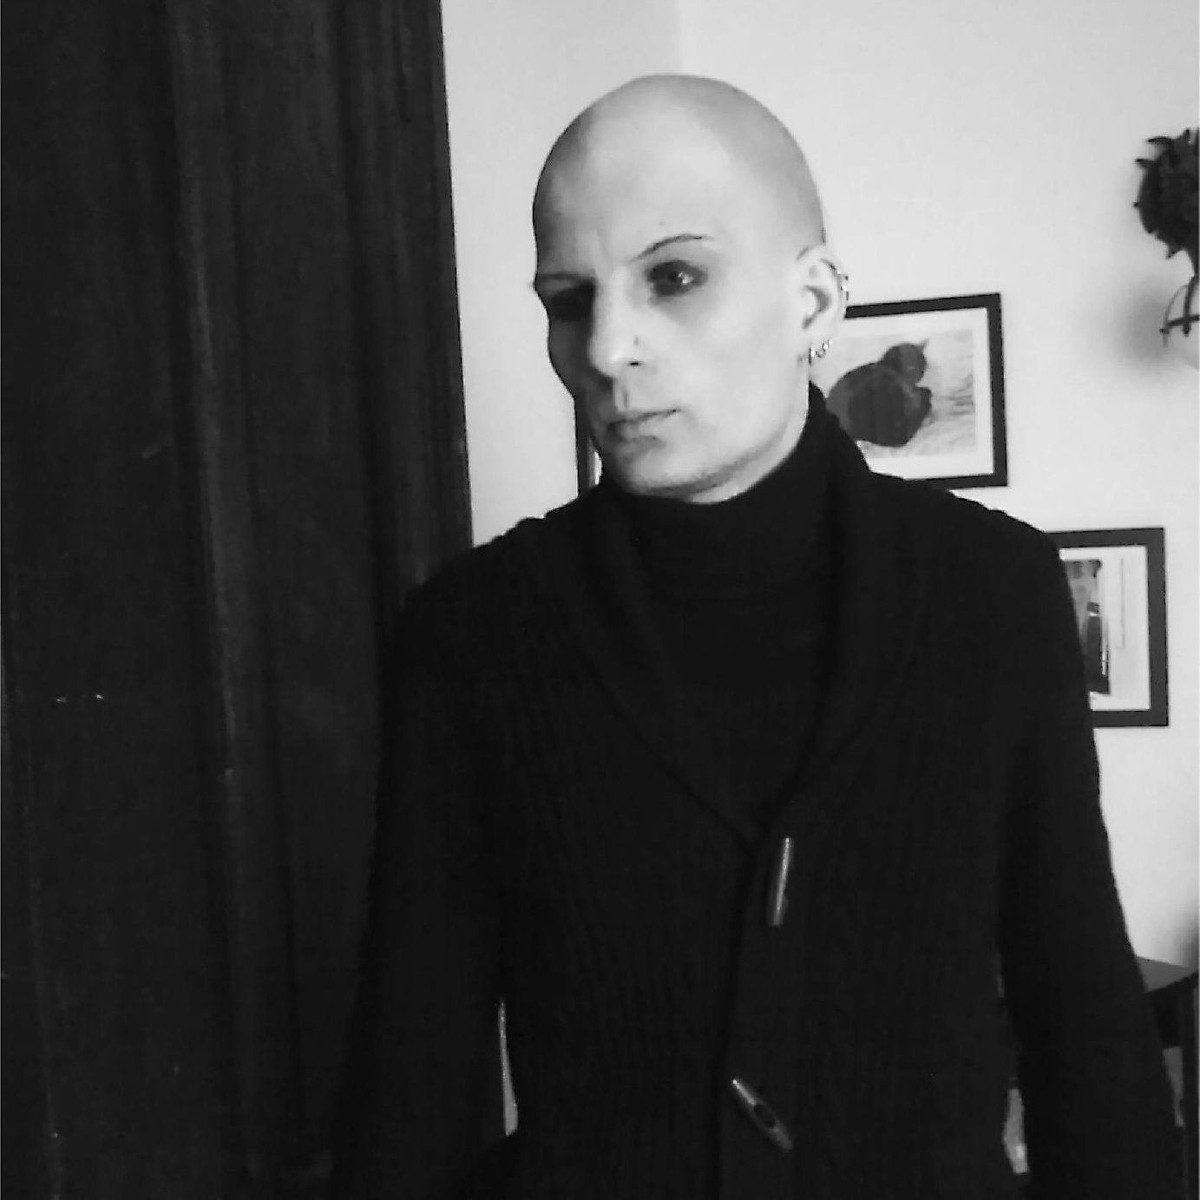 New album in the making for French darkwave act Exponentia